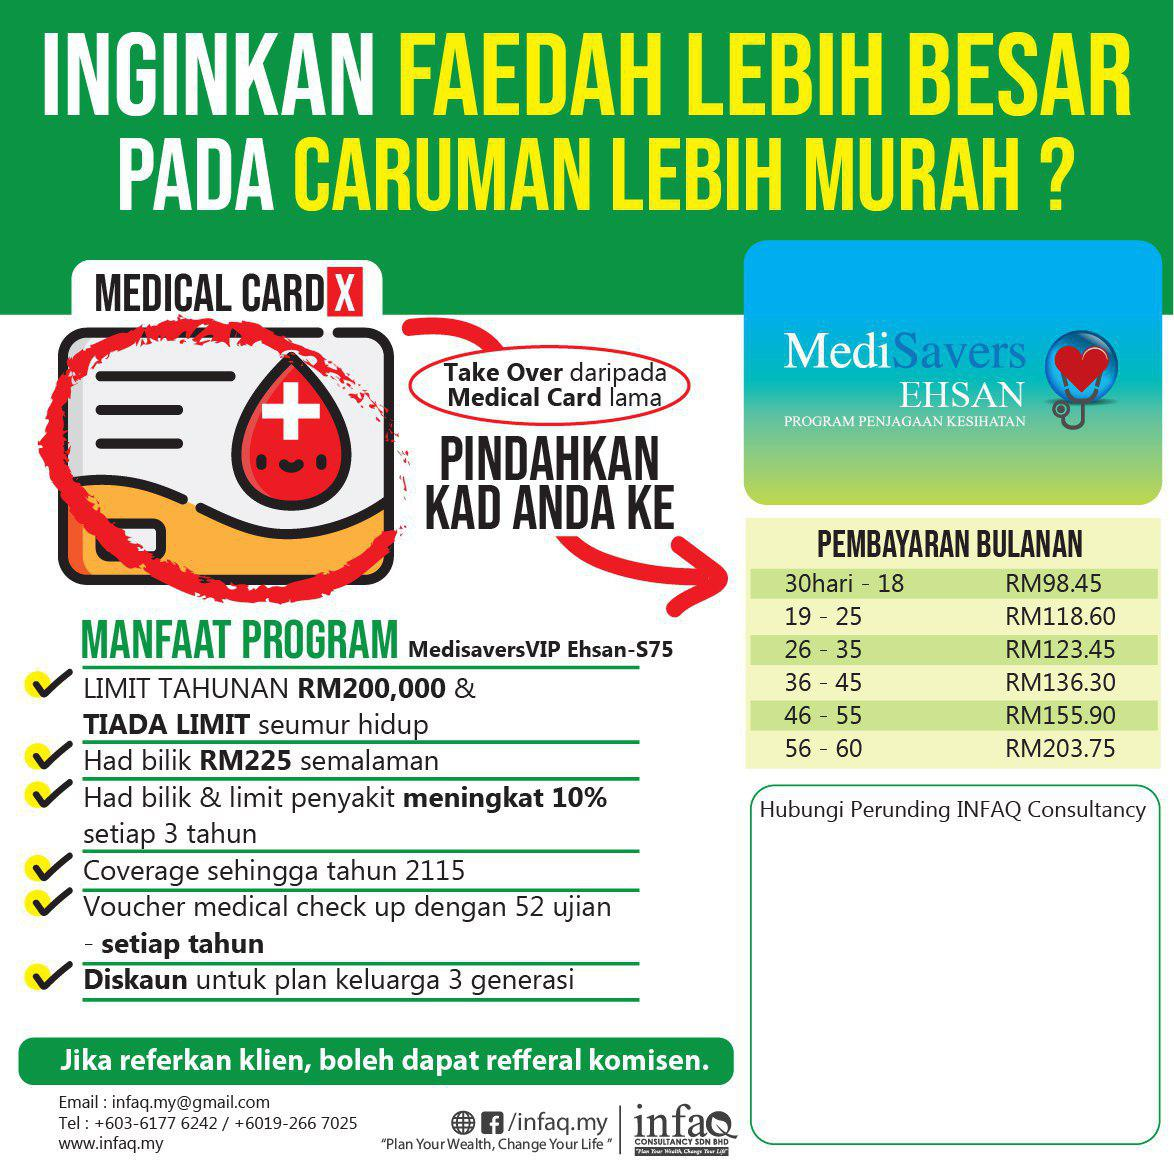 Medisaver Takaful Ehsan – Take Over Medical Card lama